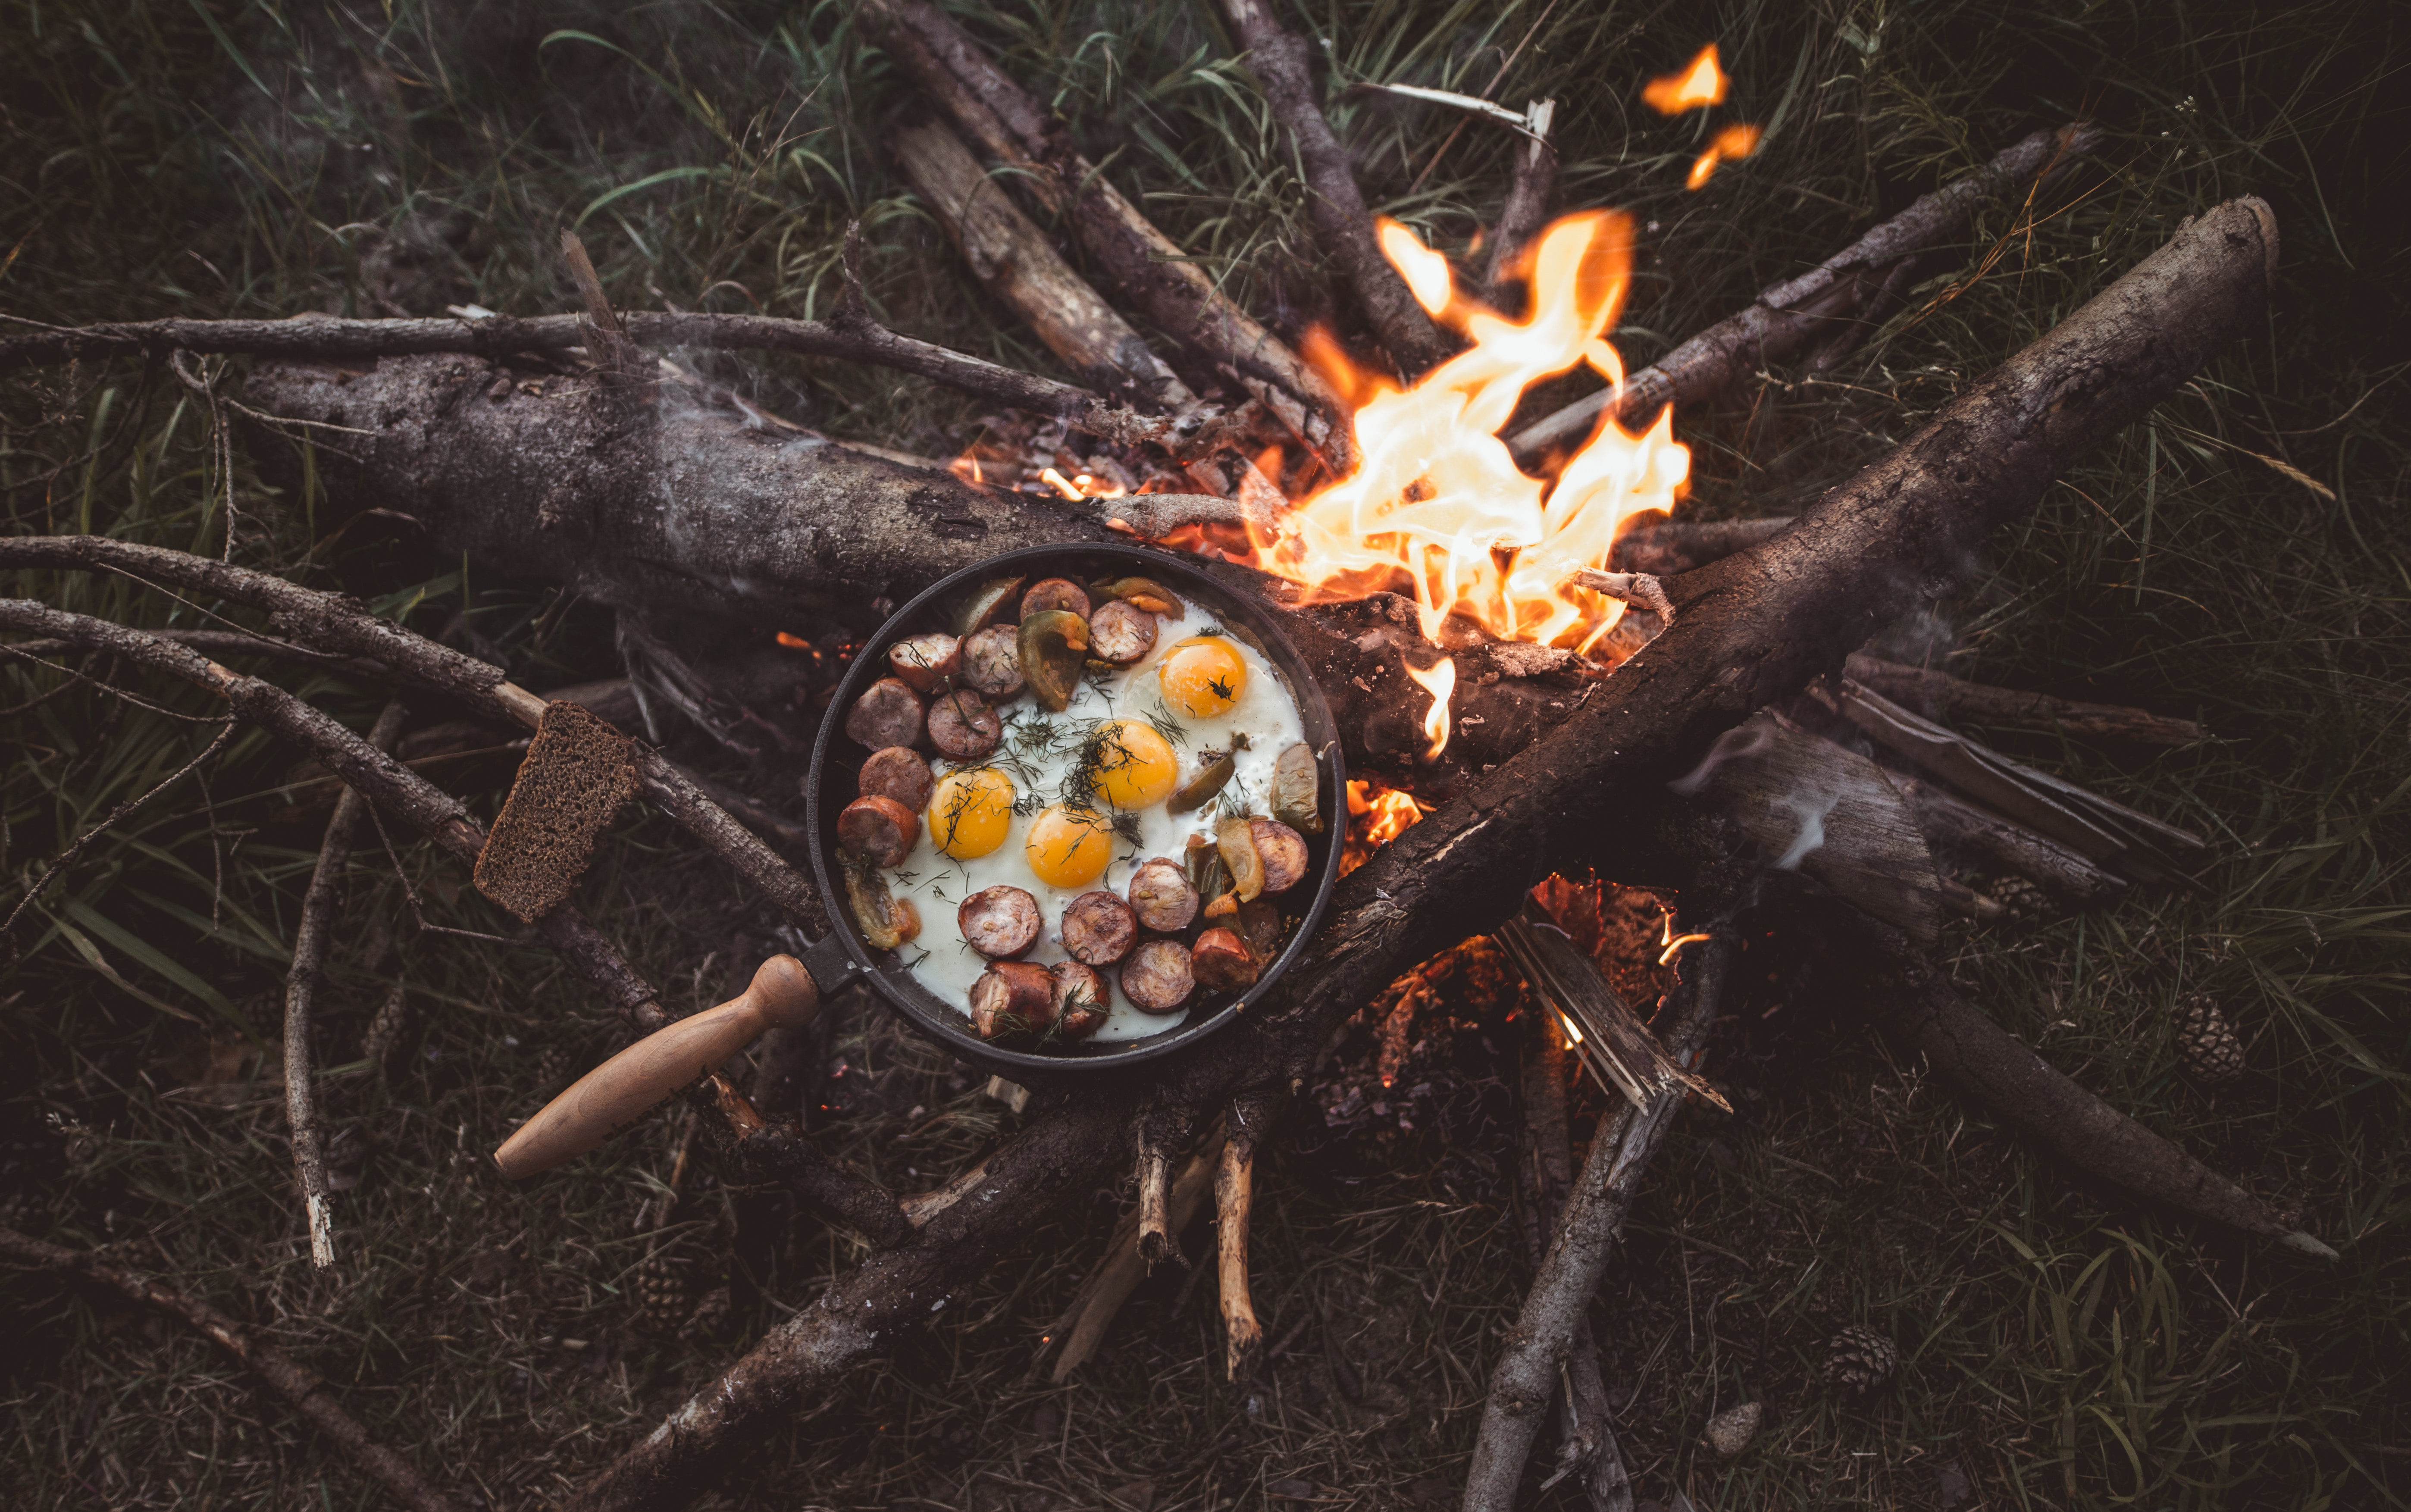 85981 download wallpaper Camping, Food, Fire, Bonfire, Scrambled Eggs, Campsite screensavers and pictures for free